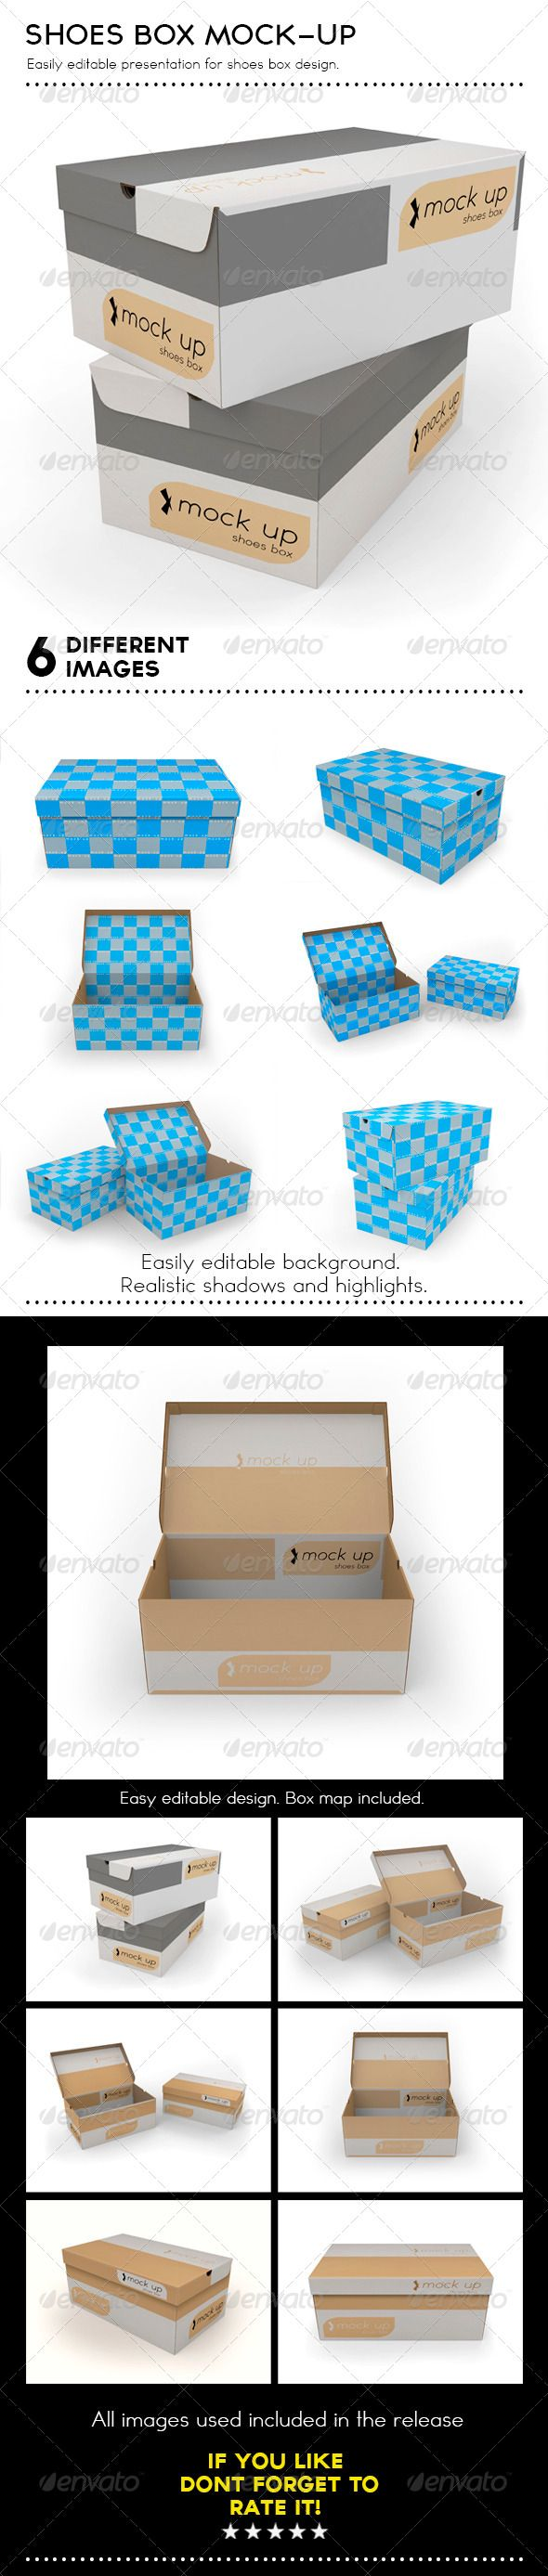 Shoes Box Mockup